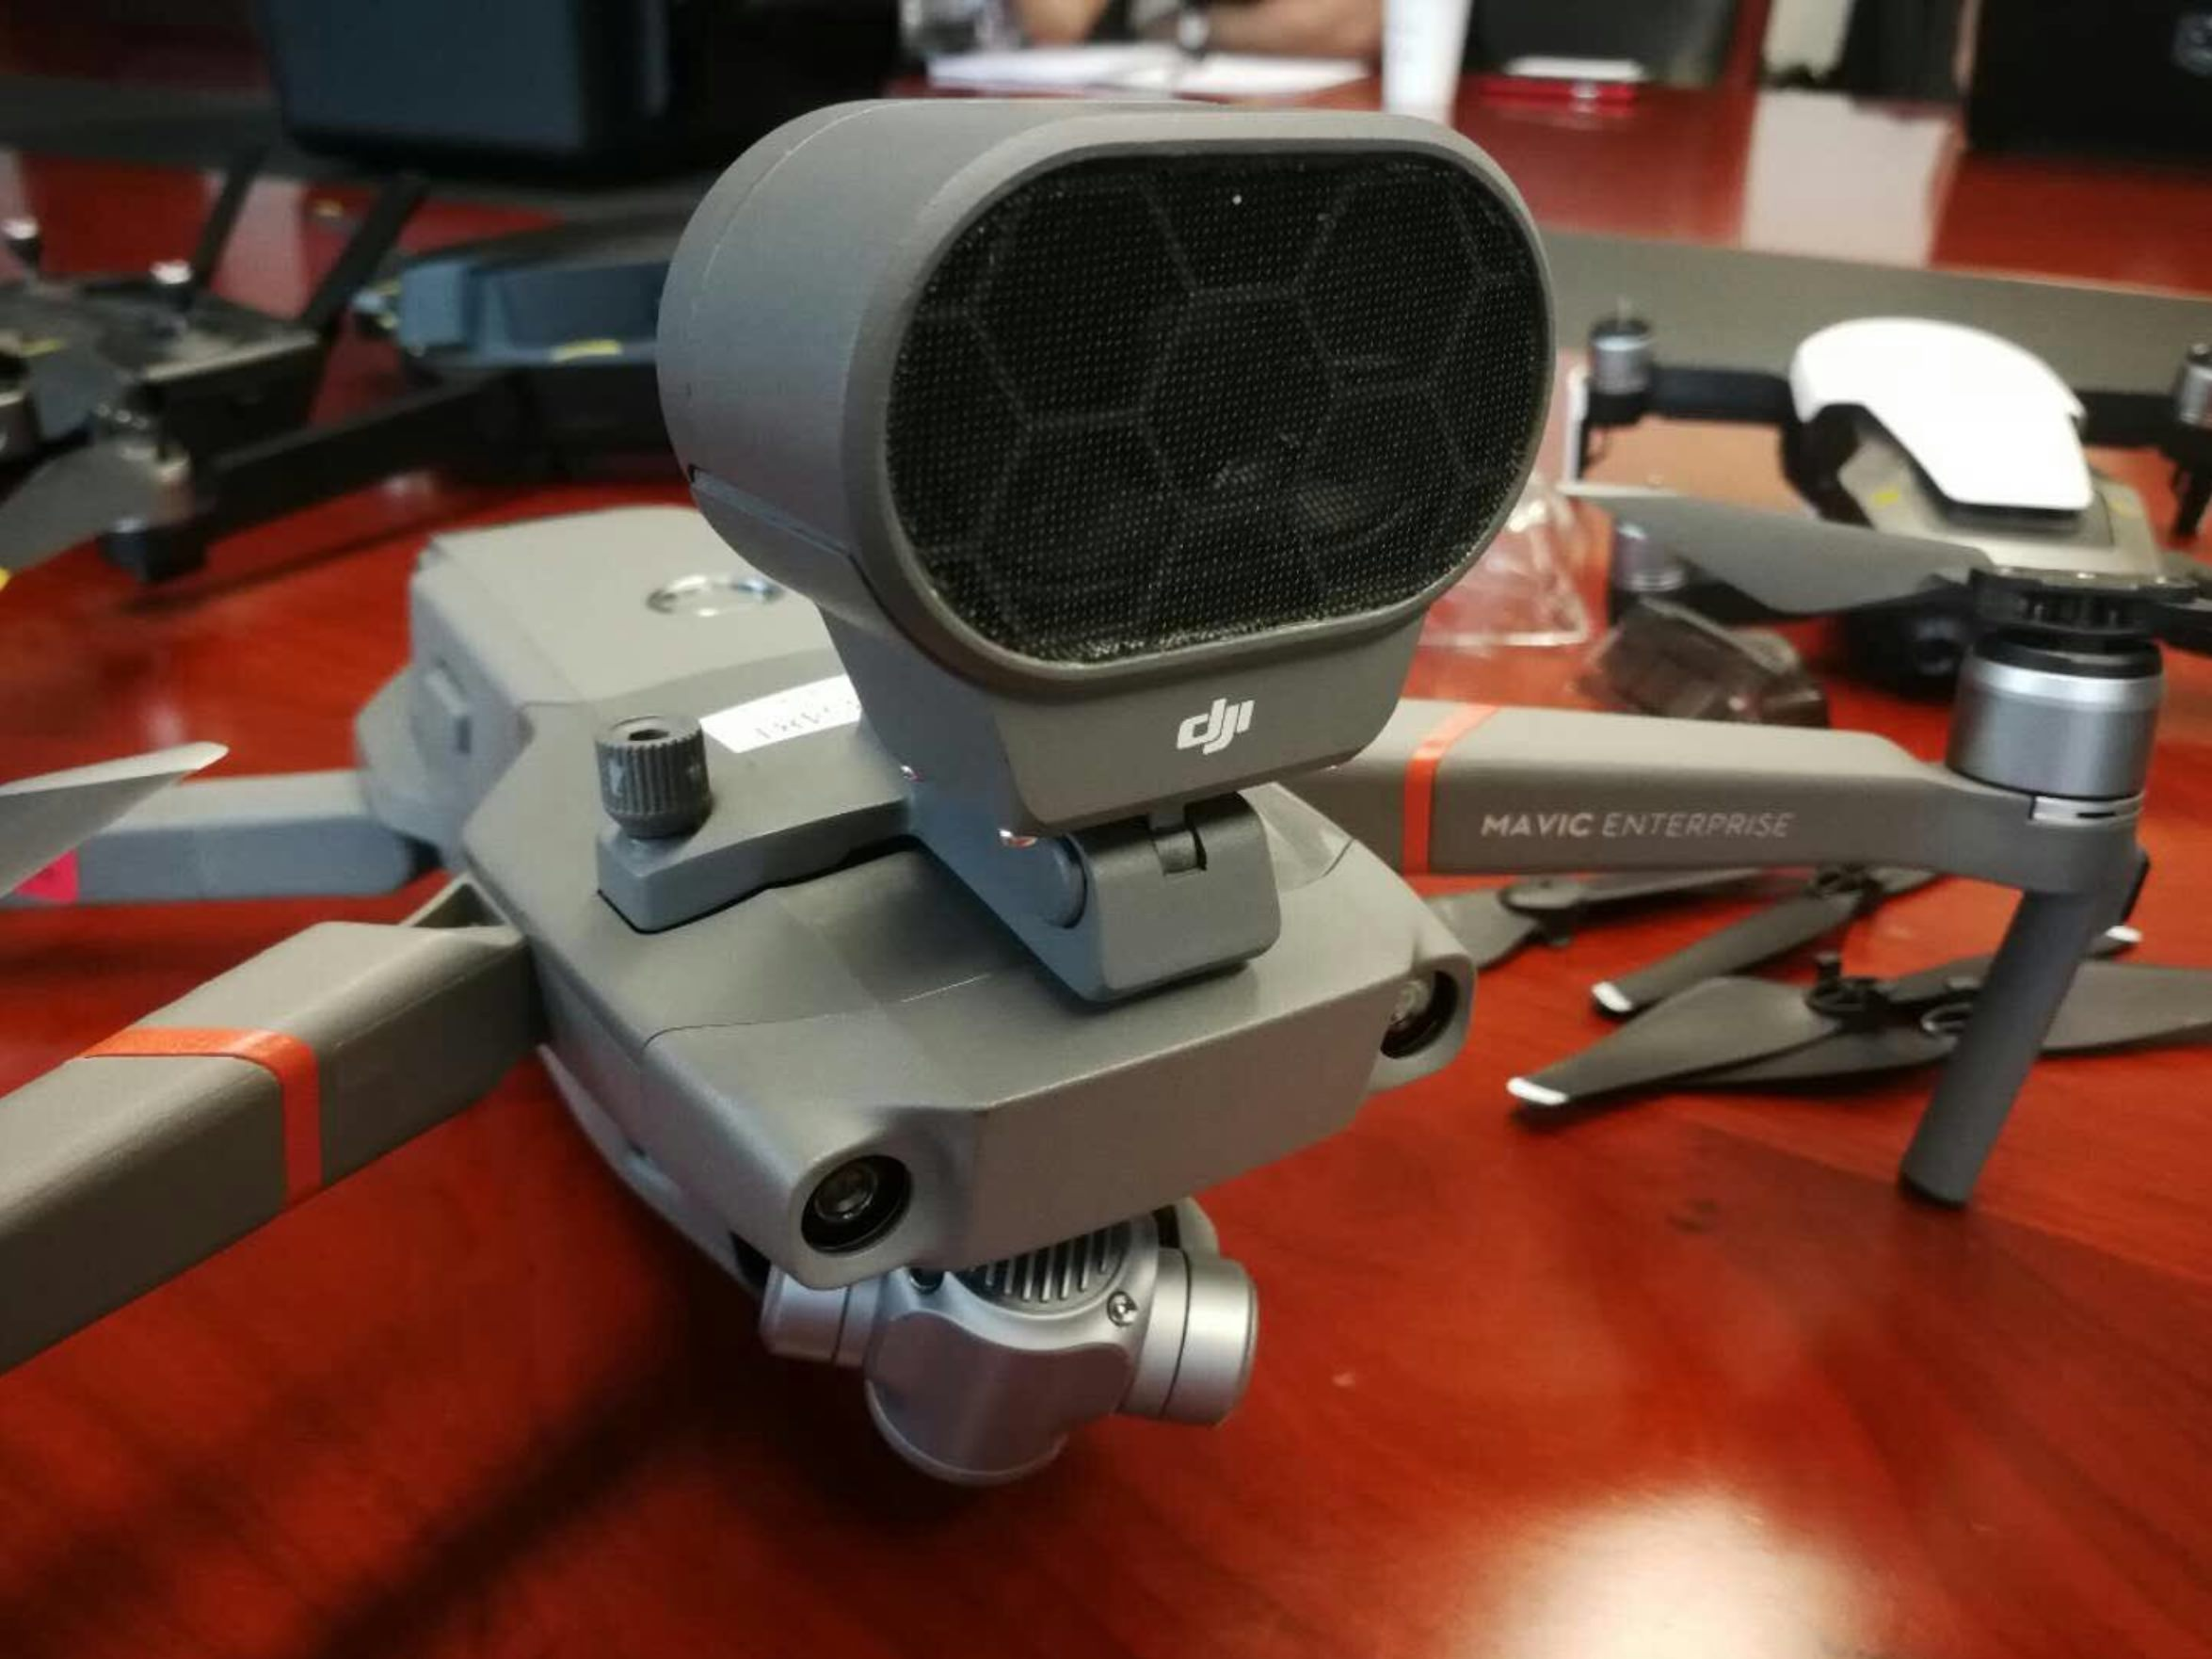 New-DJI-Mavic-2-Enterprise22-edition-photos-show-up-providing-us-with-more-details-of-the-new-foldable-drone.jpg